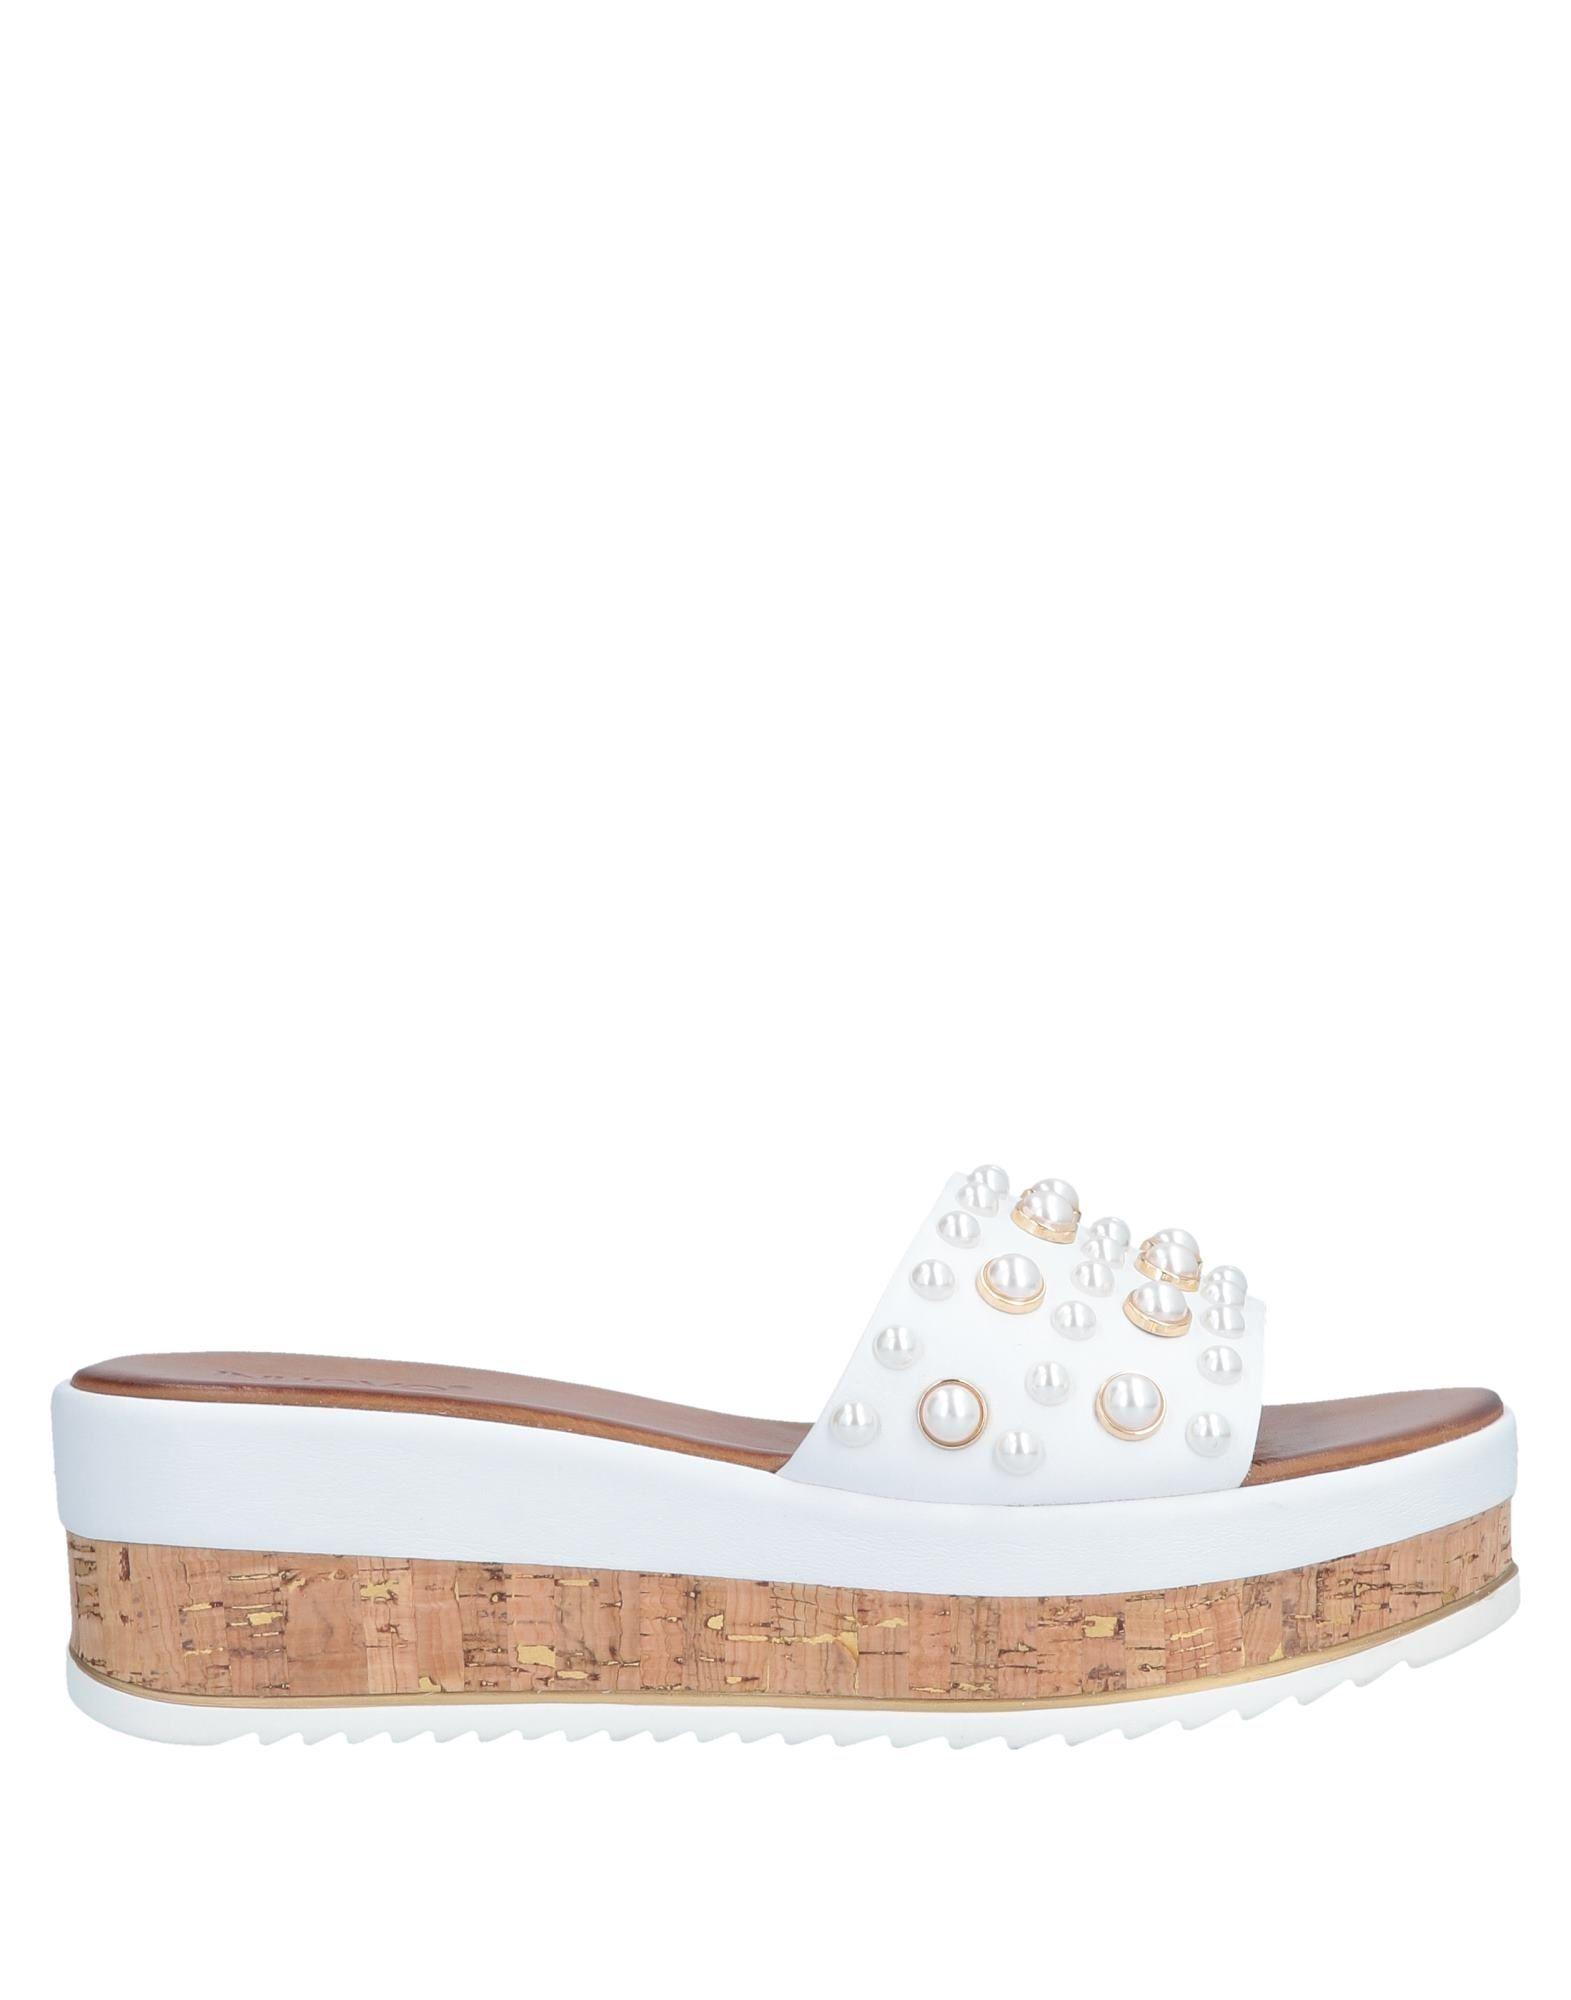 c64f0d21502 Lyst - Inuovo Sandals in White